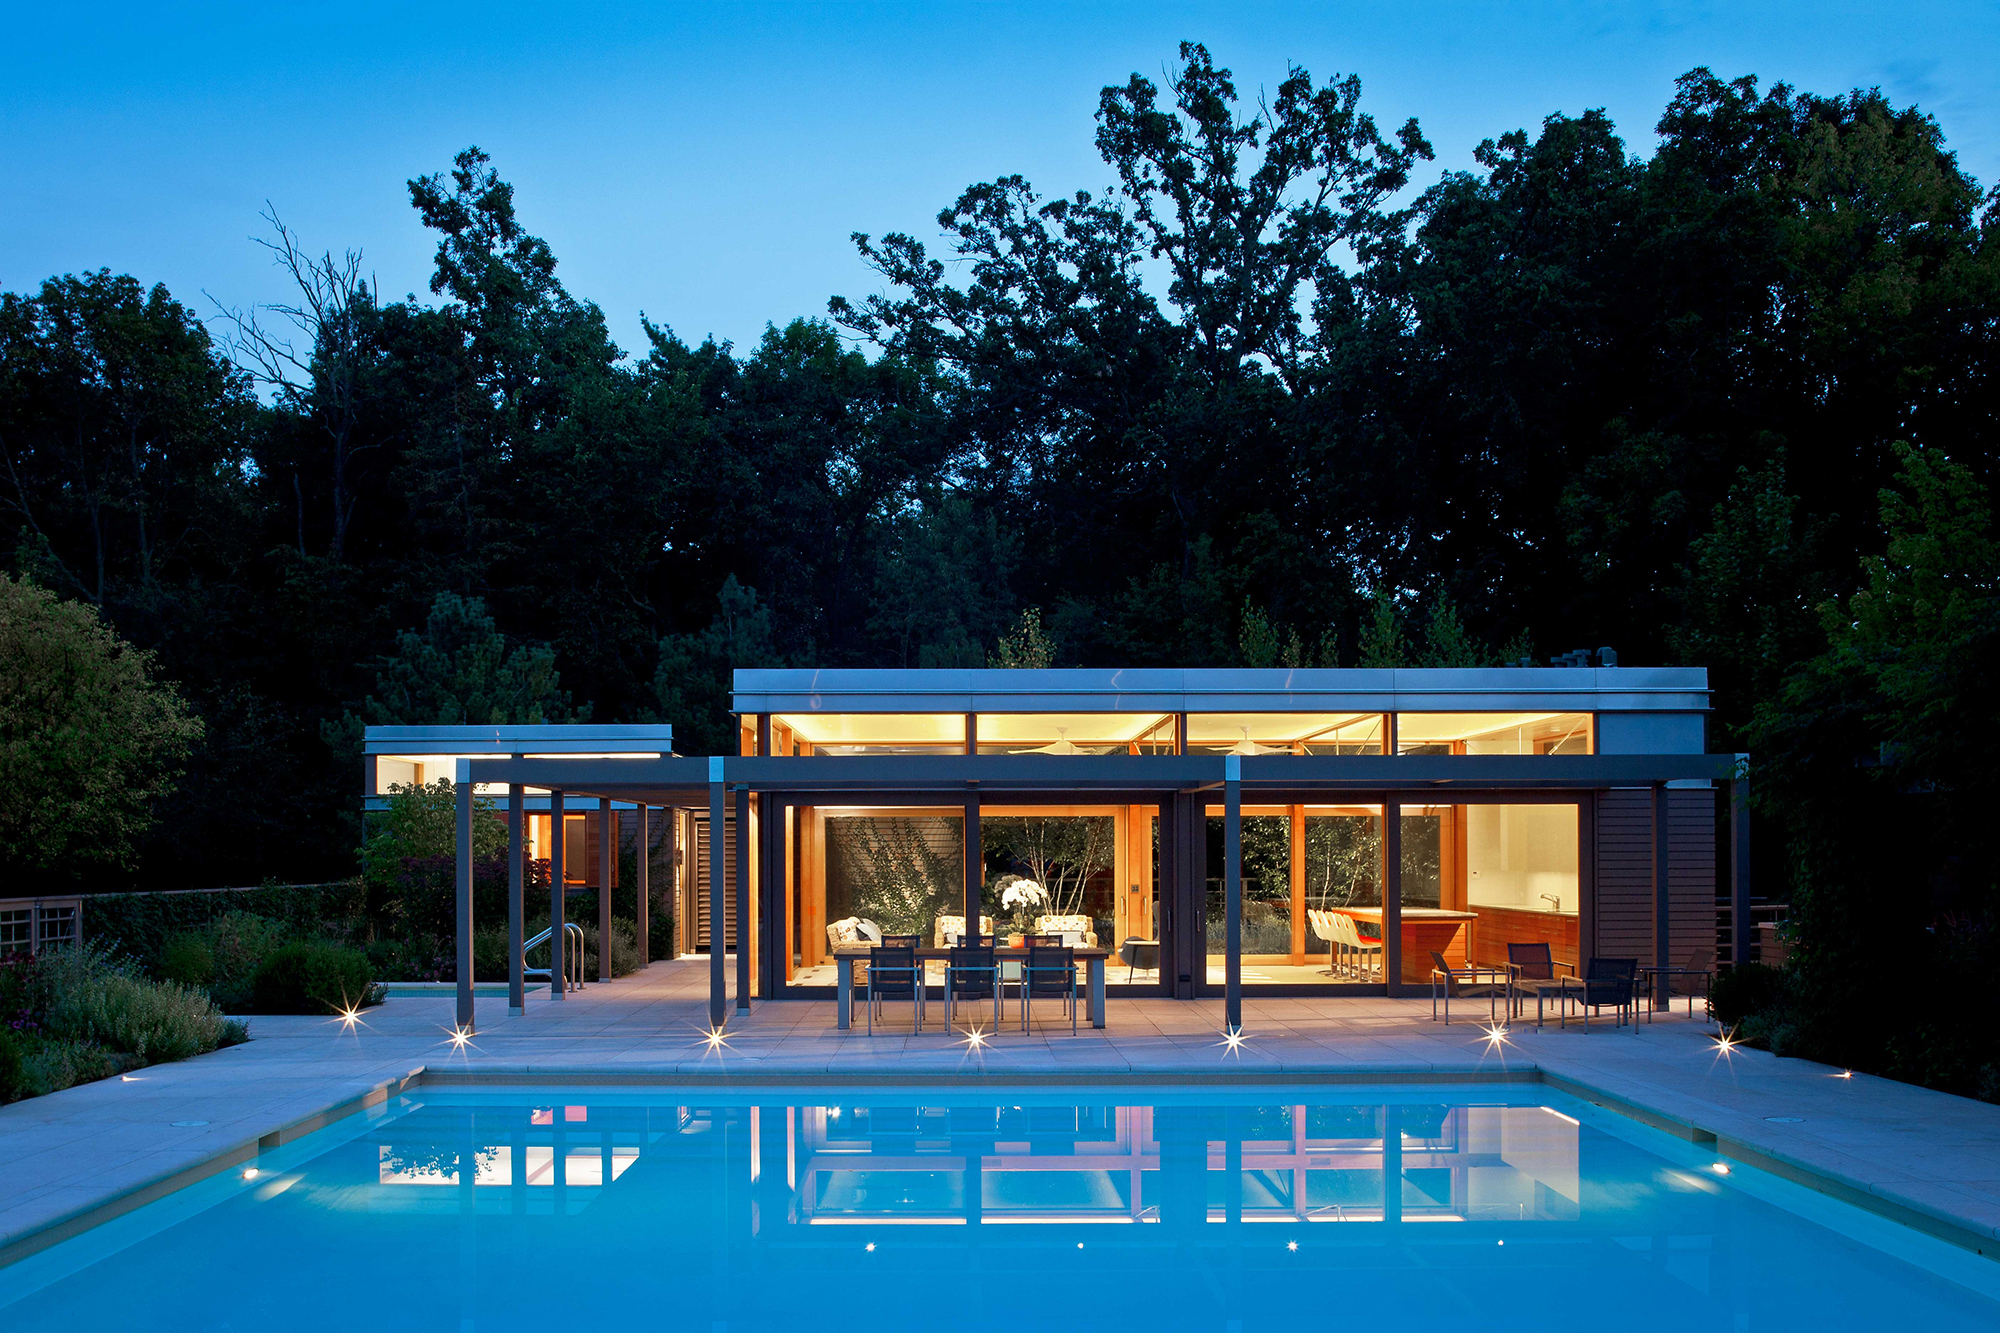 Midwest pool house architect magazine dirk denison for Custom pool house